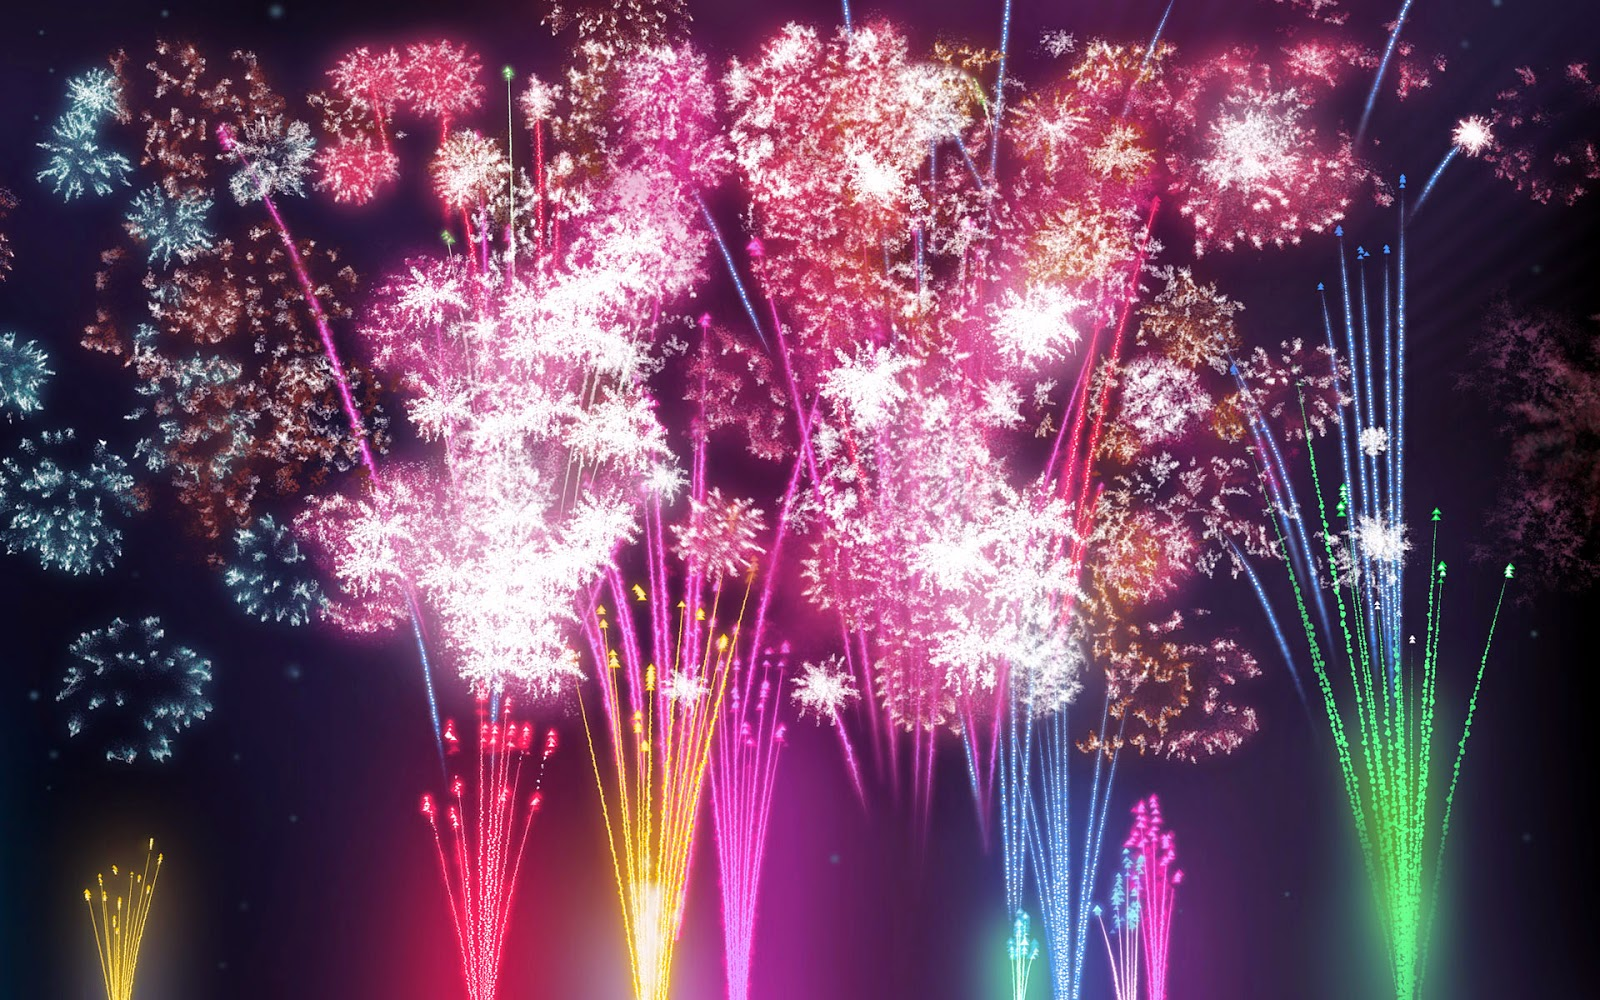 Celebration Hd Wallpapers 2015 Animated Cakes Fireworks